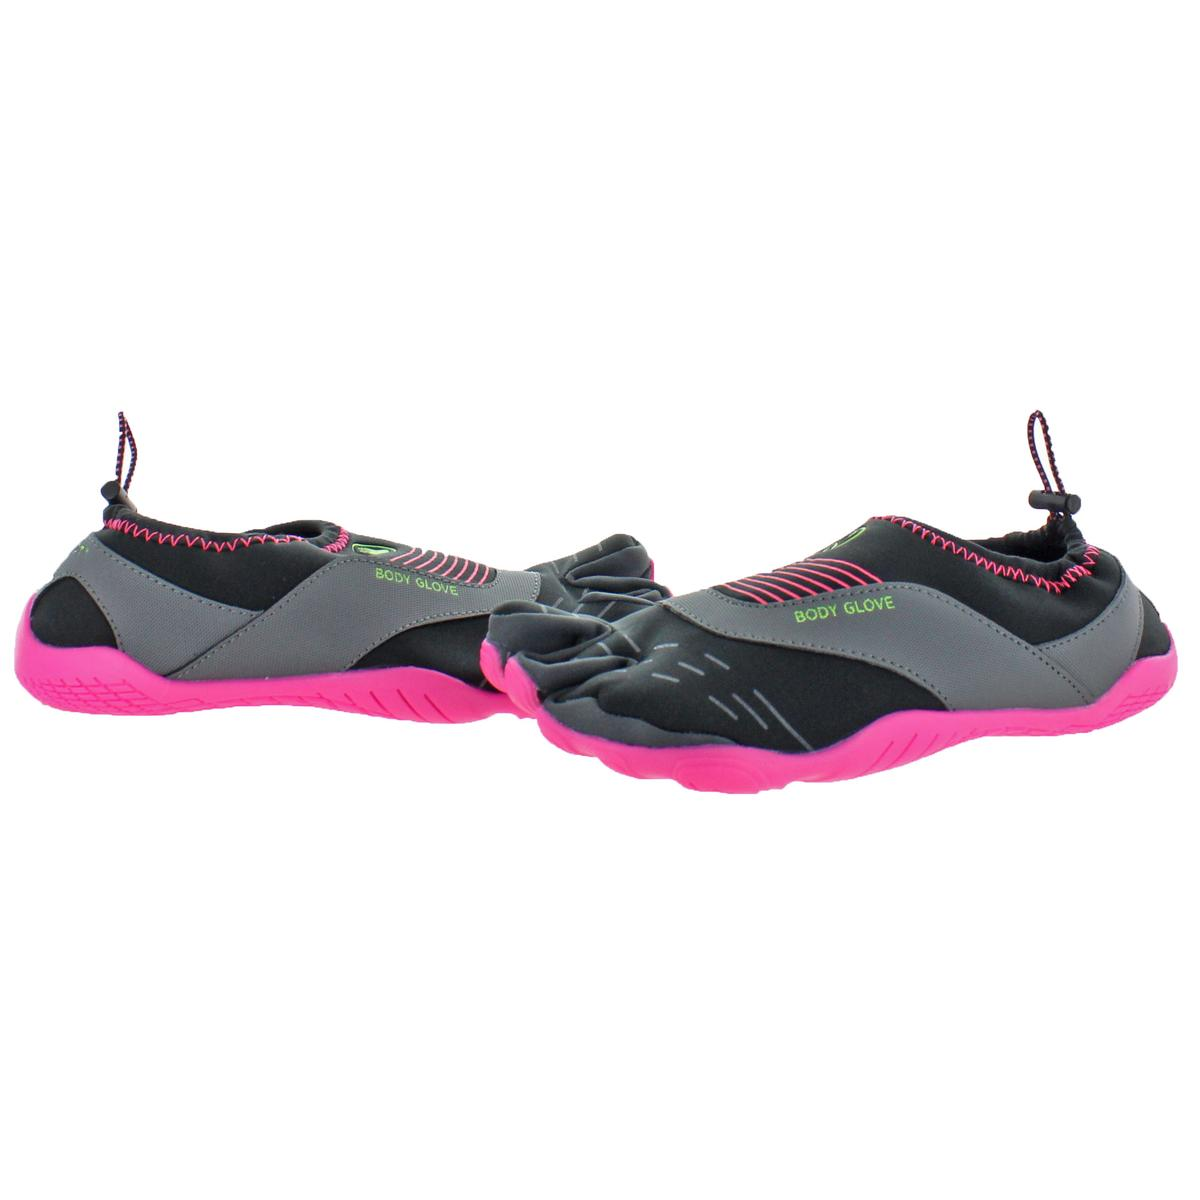 Body-Glove-Women-039-s-Cinch-Neoprene-Barefoot-Minimalist-Three-Toe-Water-Shoes thumbnail 3